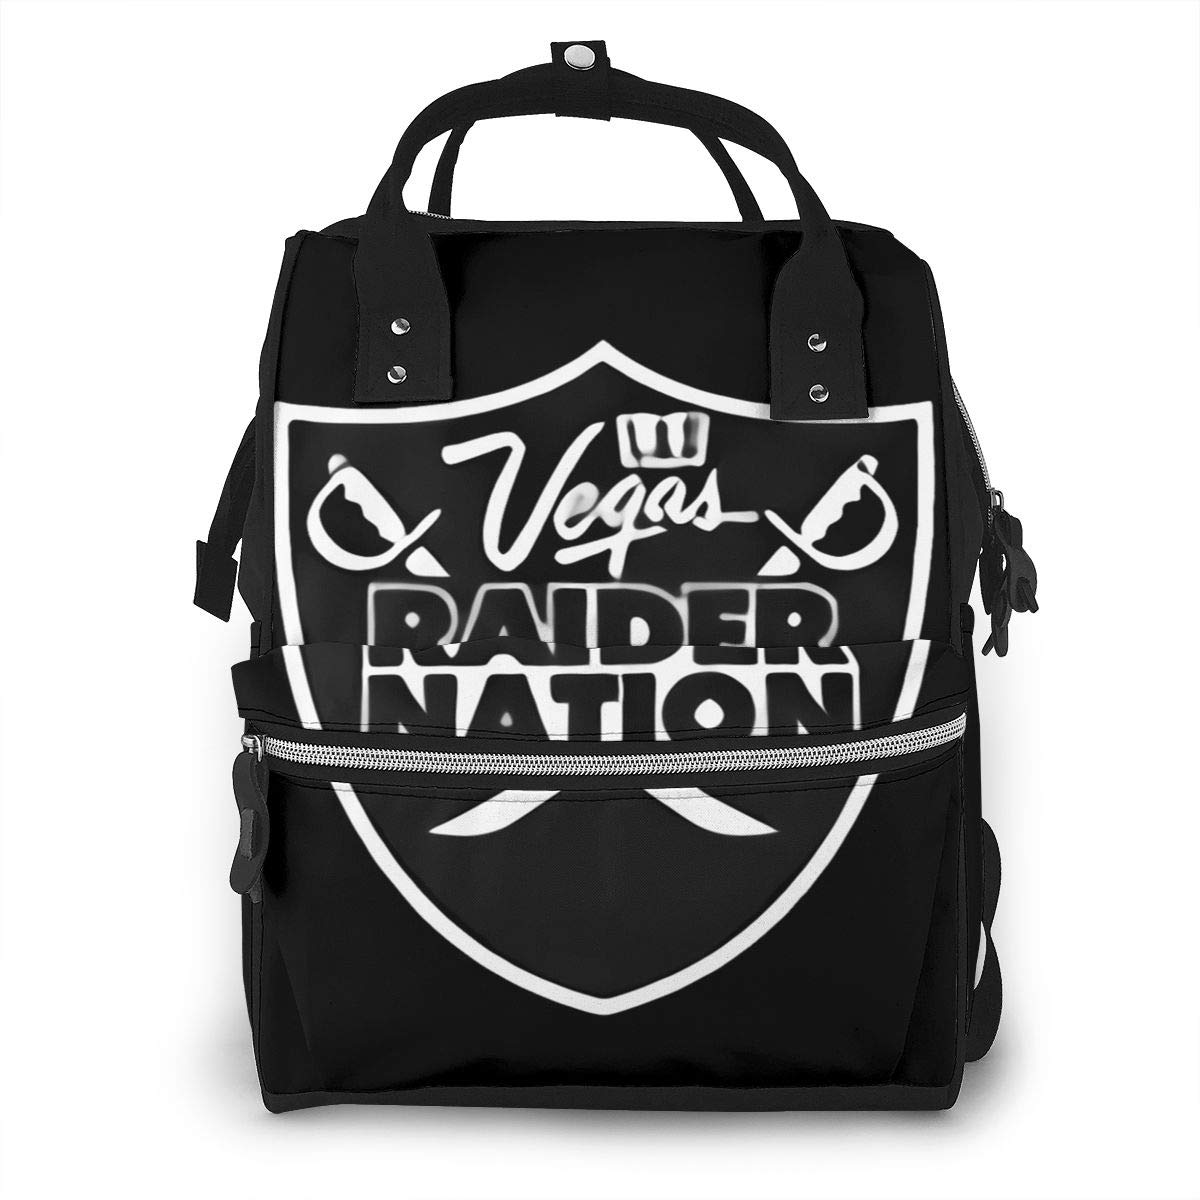 Details About Las Vegas Raiders Graphic Durable Large Capacity Diaper Bag Mommy Backpack